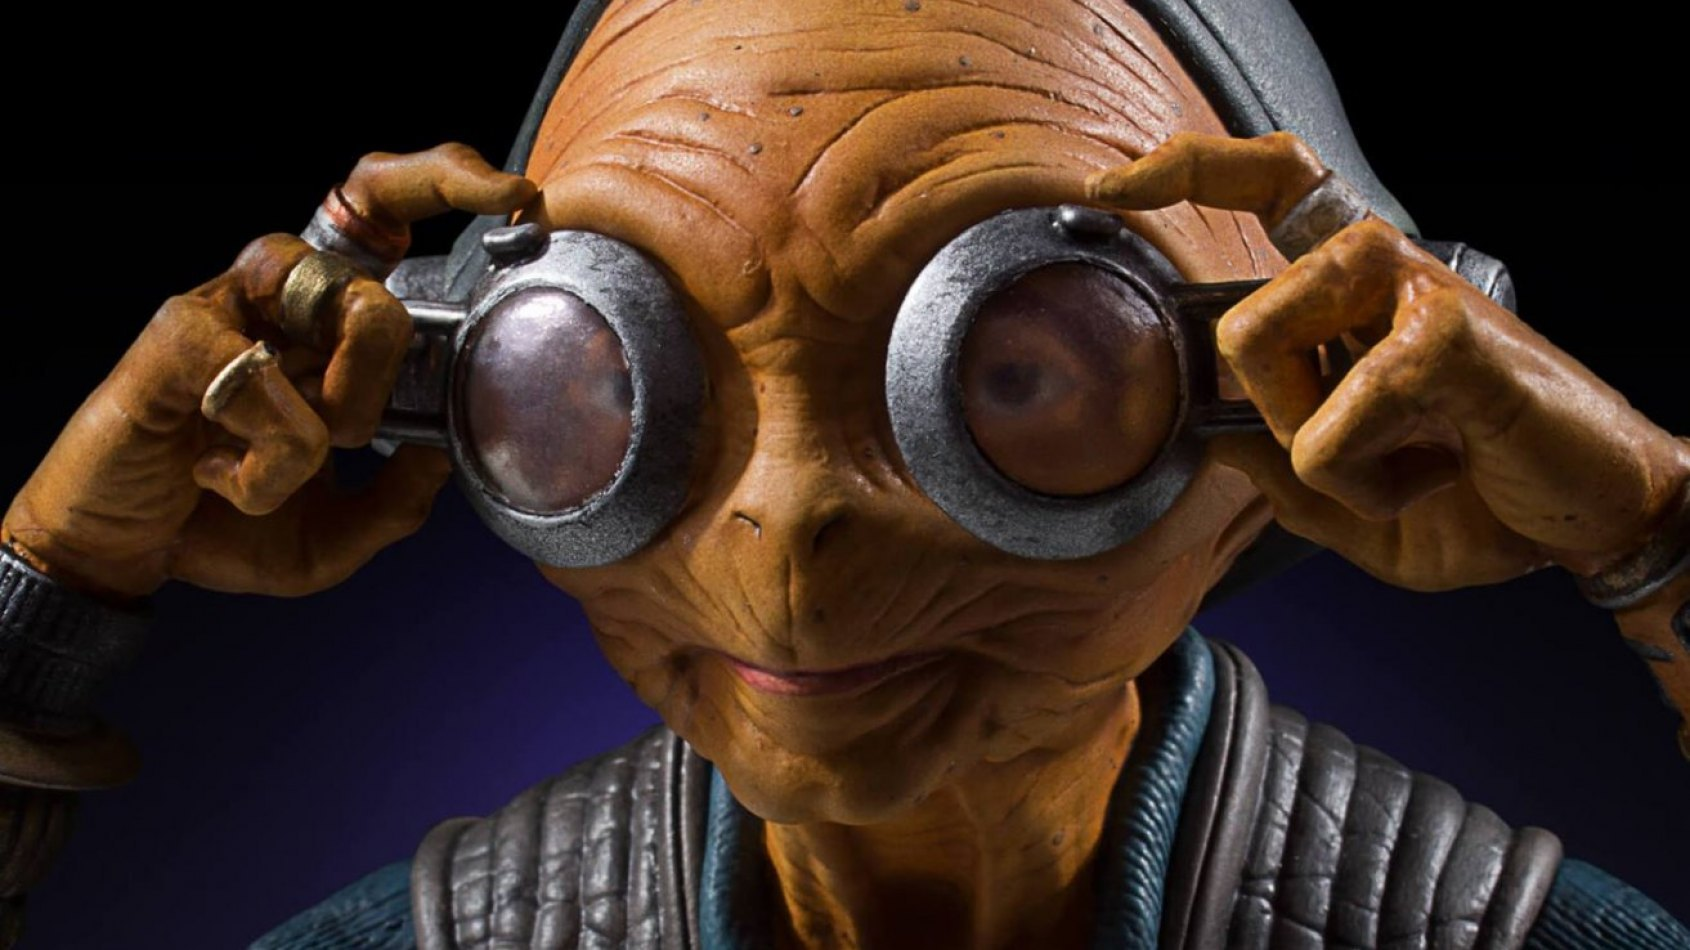 [Gentle Giant] Le mini buste de Maz Kanata